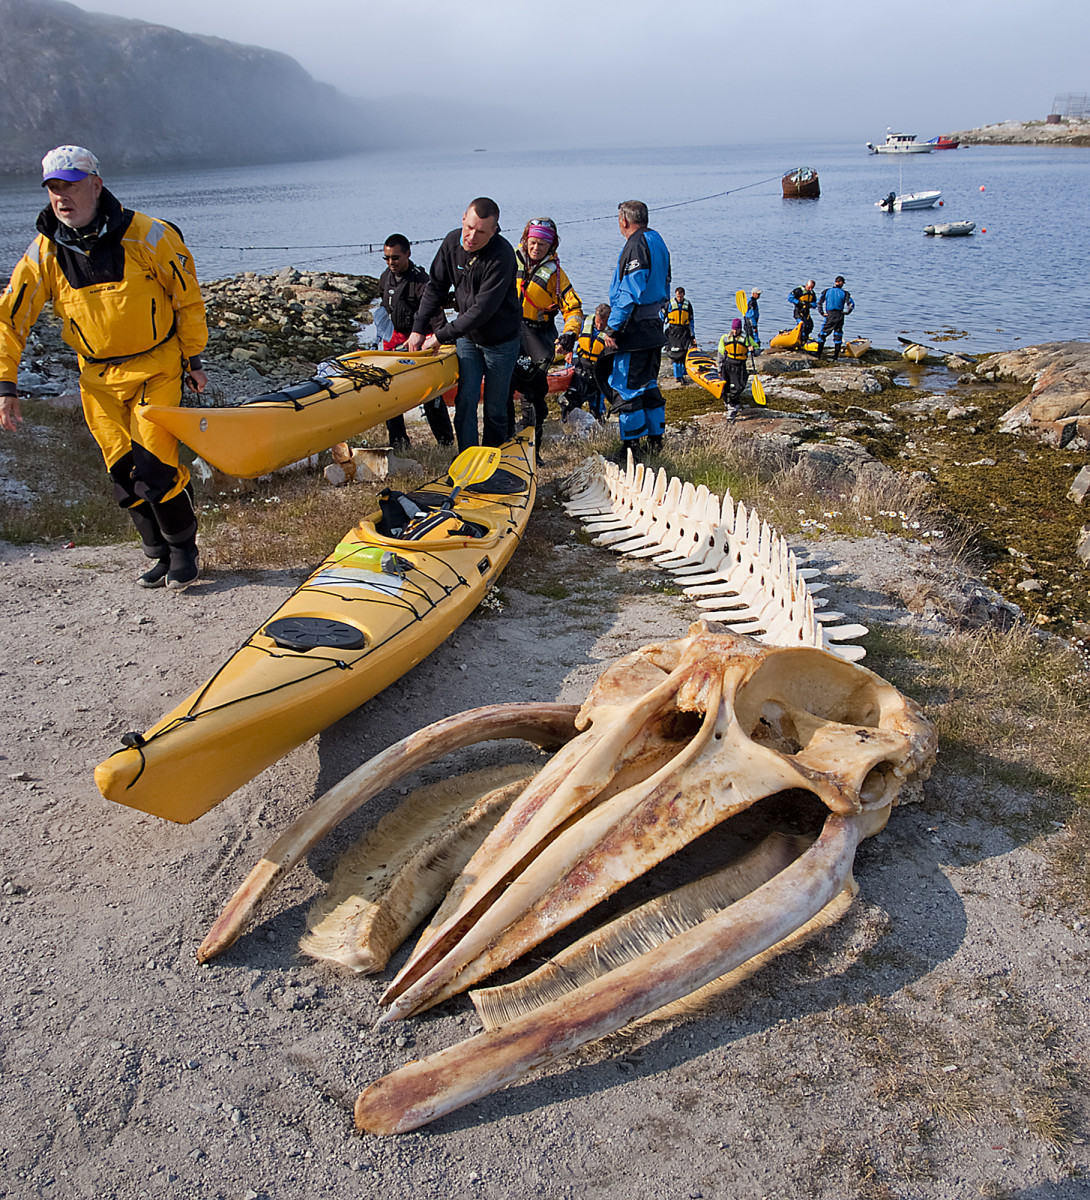 Shore visits in Greenland are rarely lacking fascinations